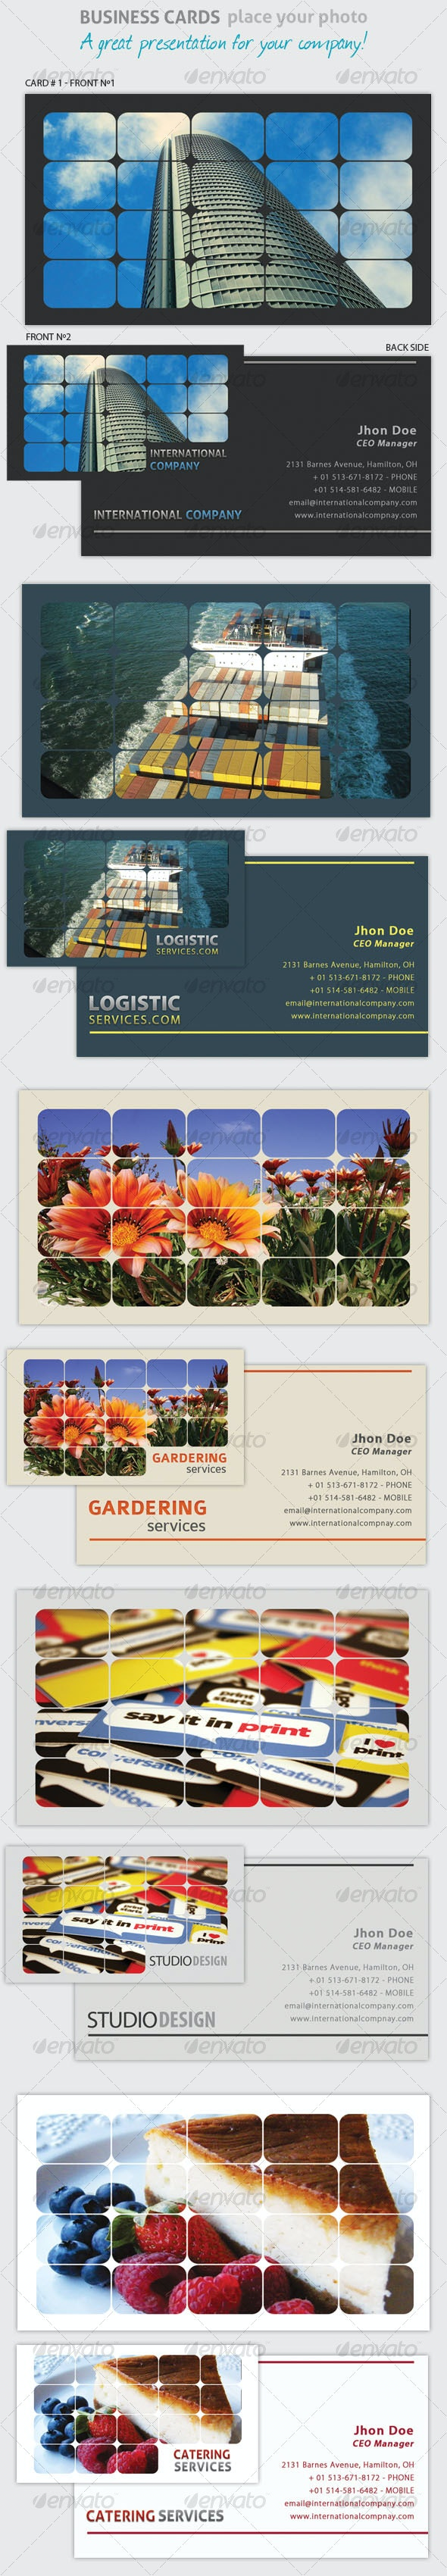 Business Card - Place Your Photo!  - Creative Business Cards